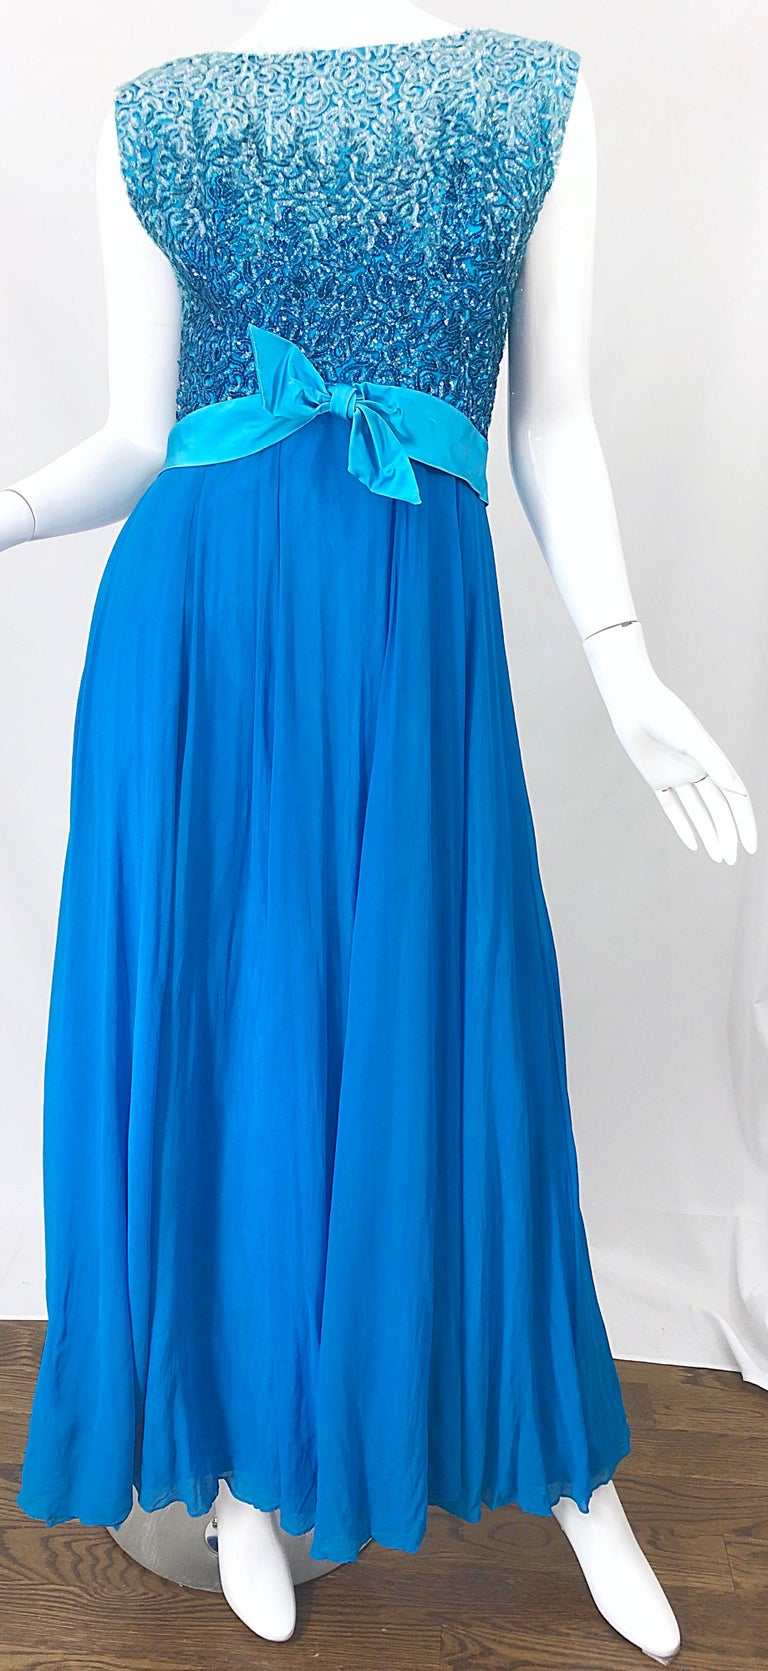 1950s Emma Domb Turquoise Blue Ombre Sequined Silk Chiffon Vintage 50s Gown For Sale 3